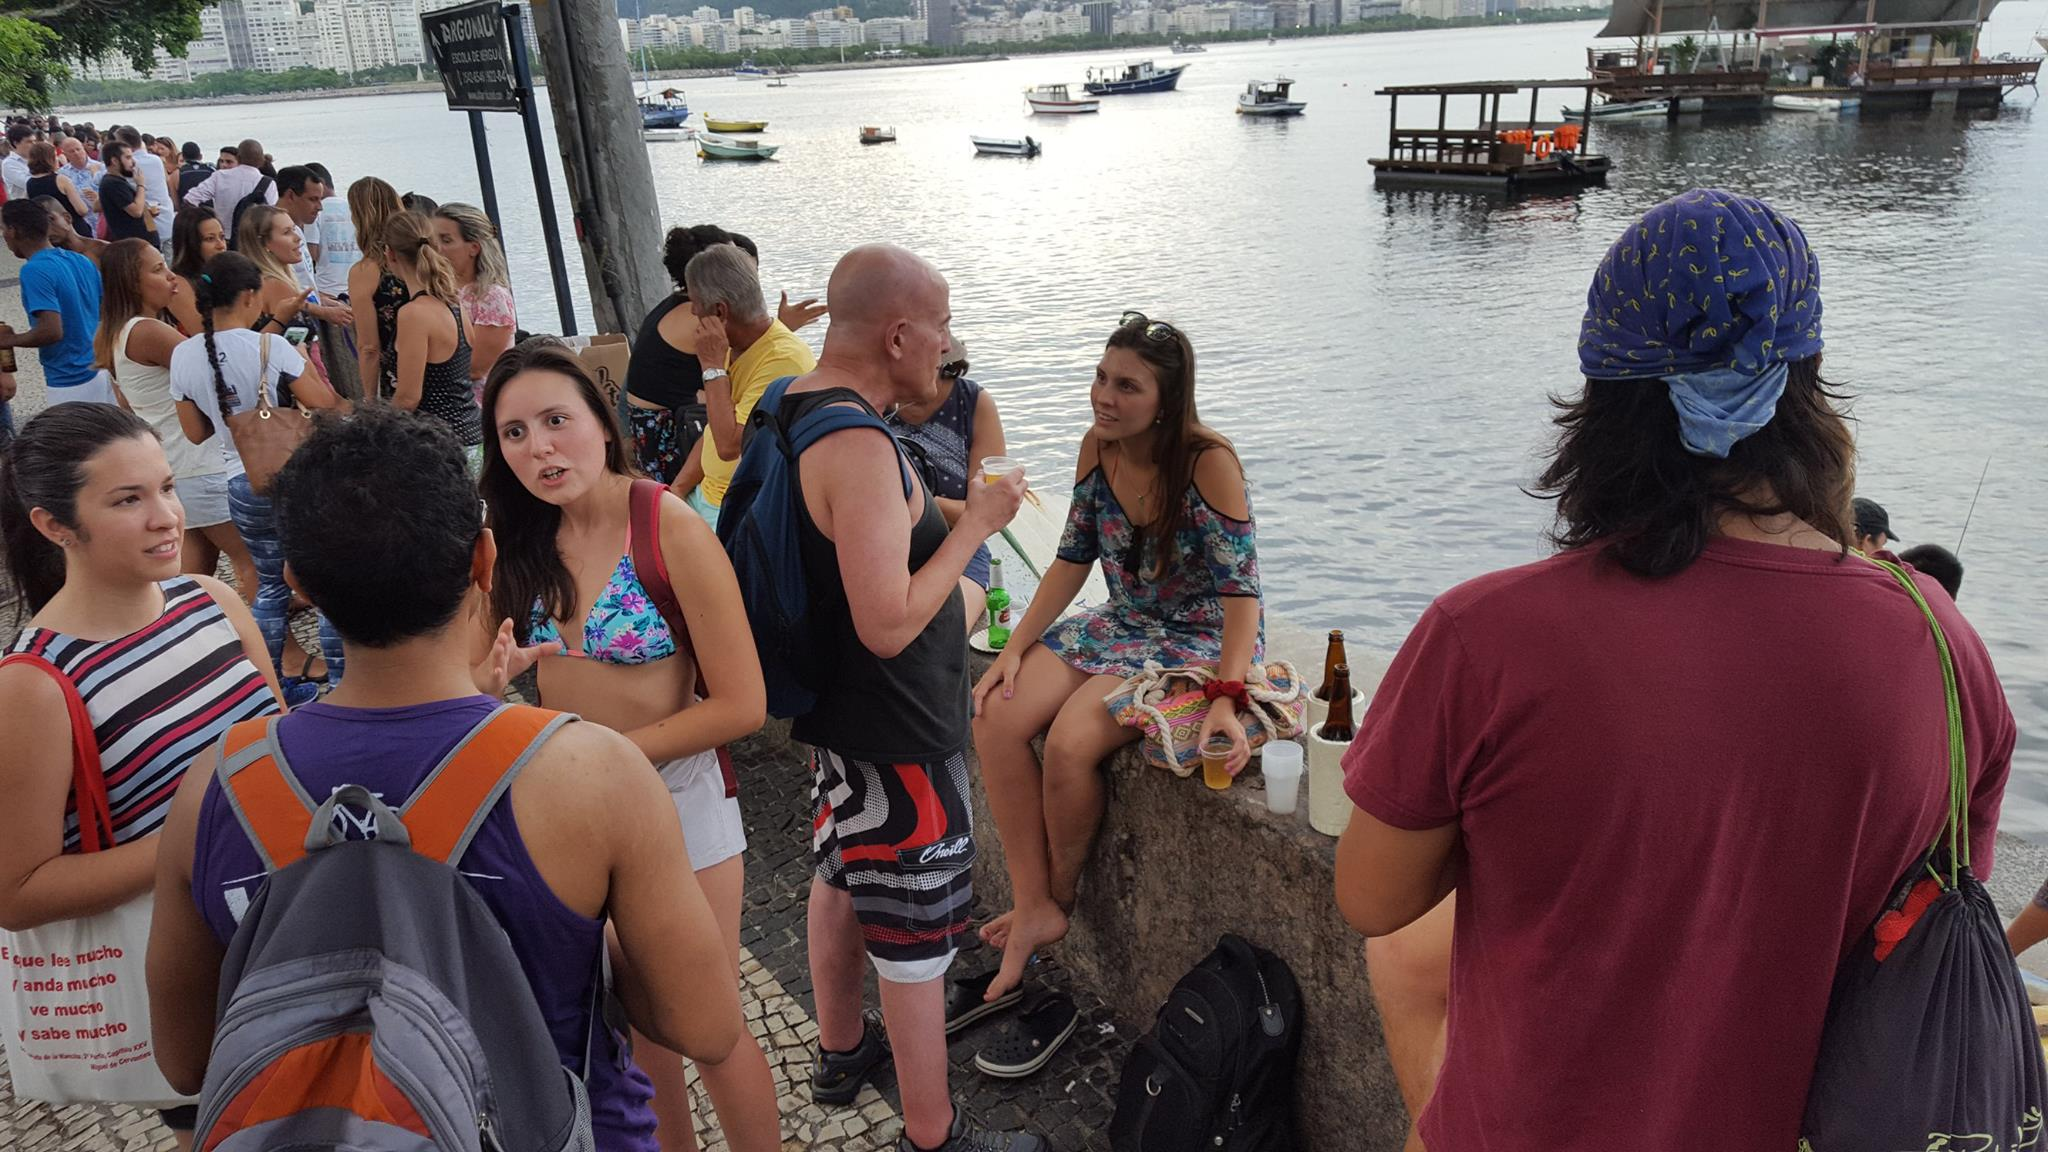 Does cold beer help speaking Portuguese? Oh, it surely does! Students drinking beer at Urca wall in Rio de Janeiro.